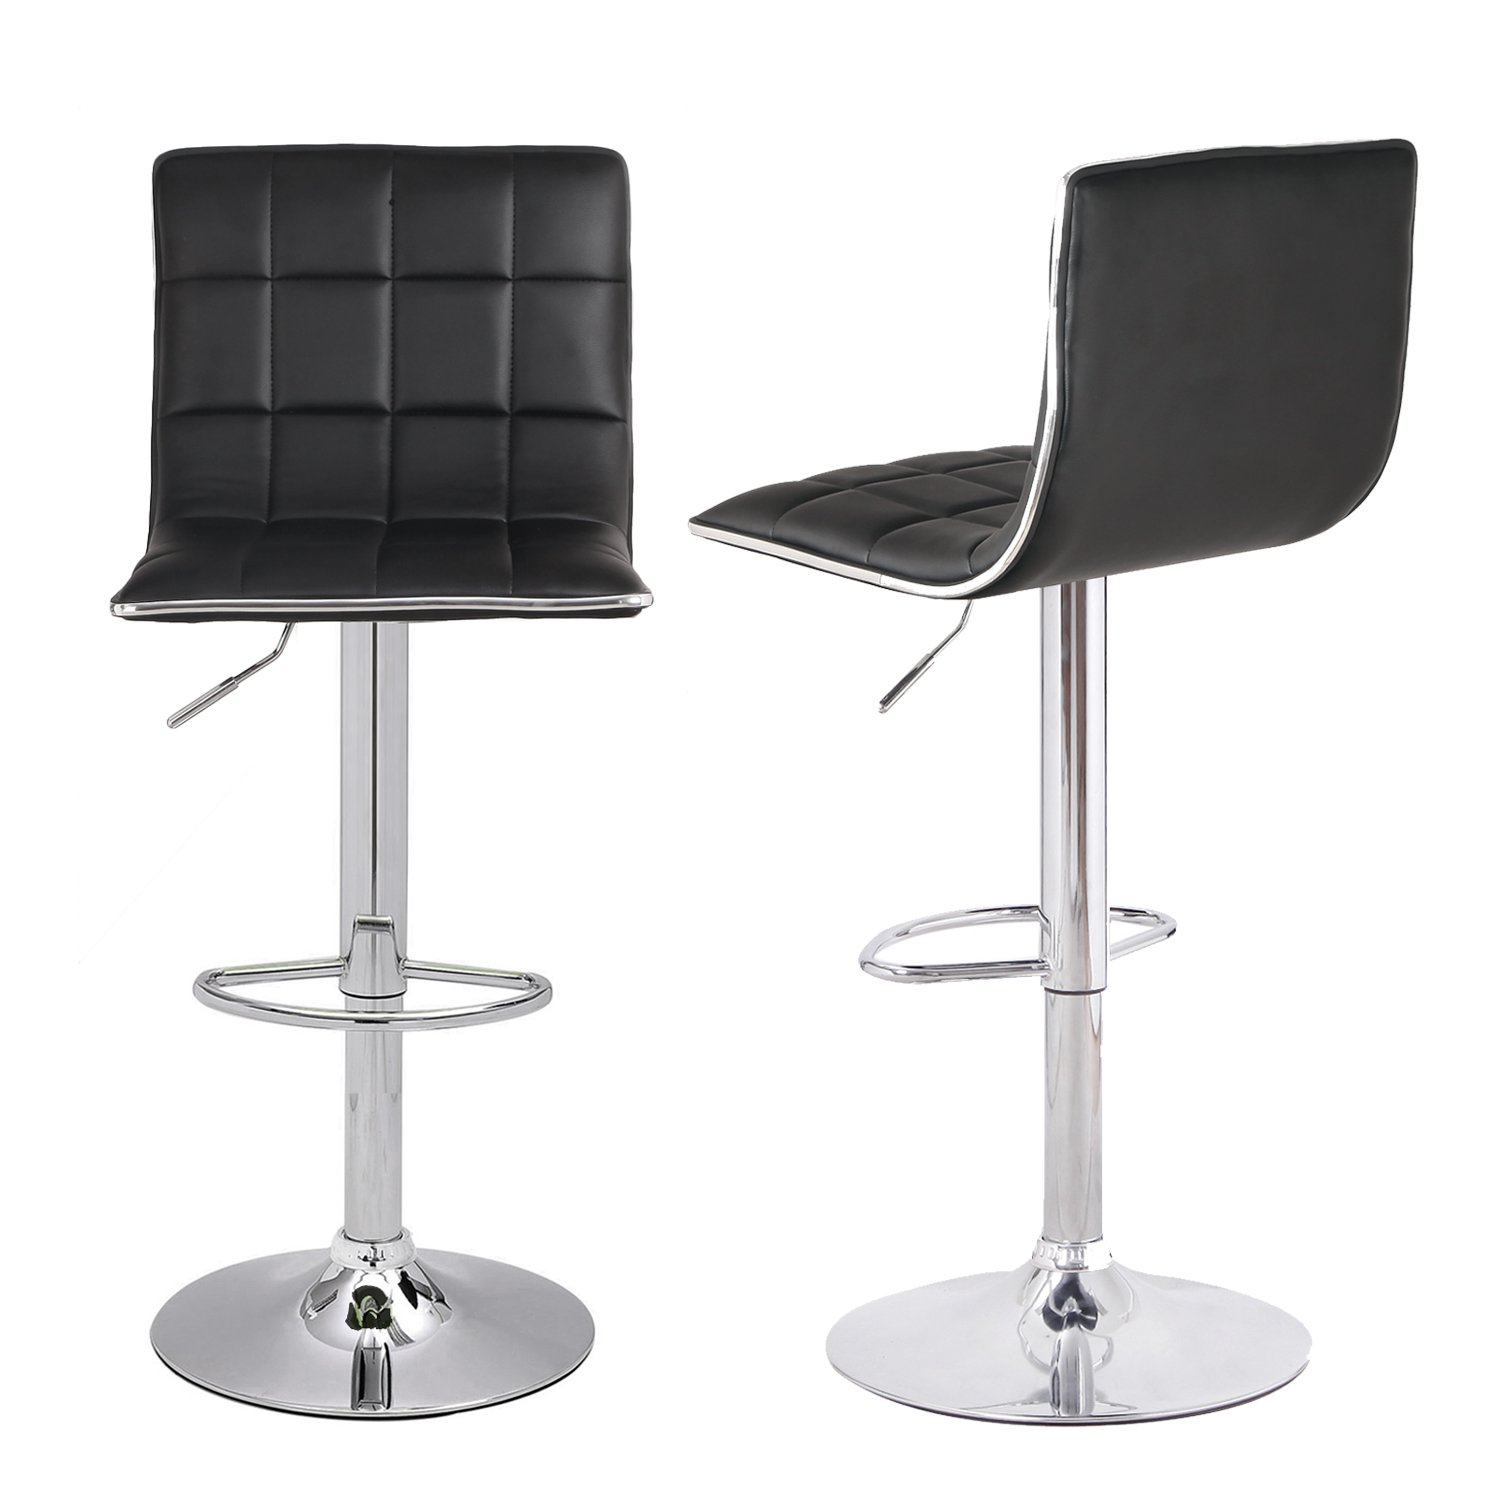 Asense Leather Hydraulic Adjustable Barstool Chair with Footrest & Chrome Metal Base (Set of 2) (Black)